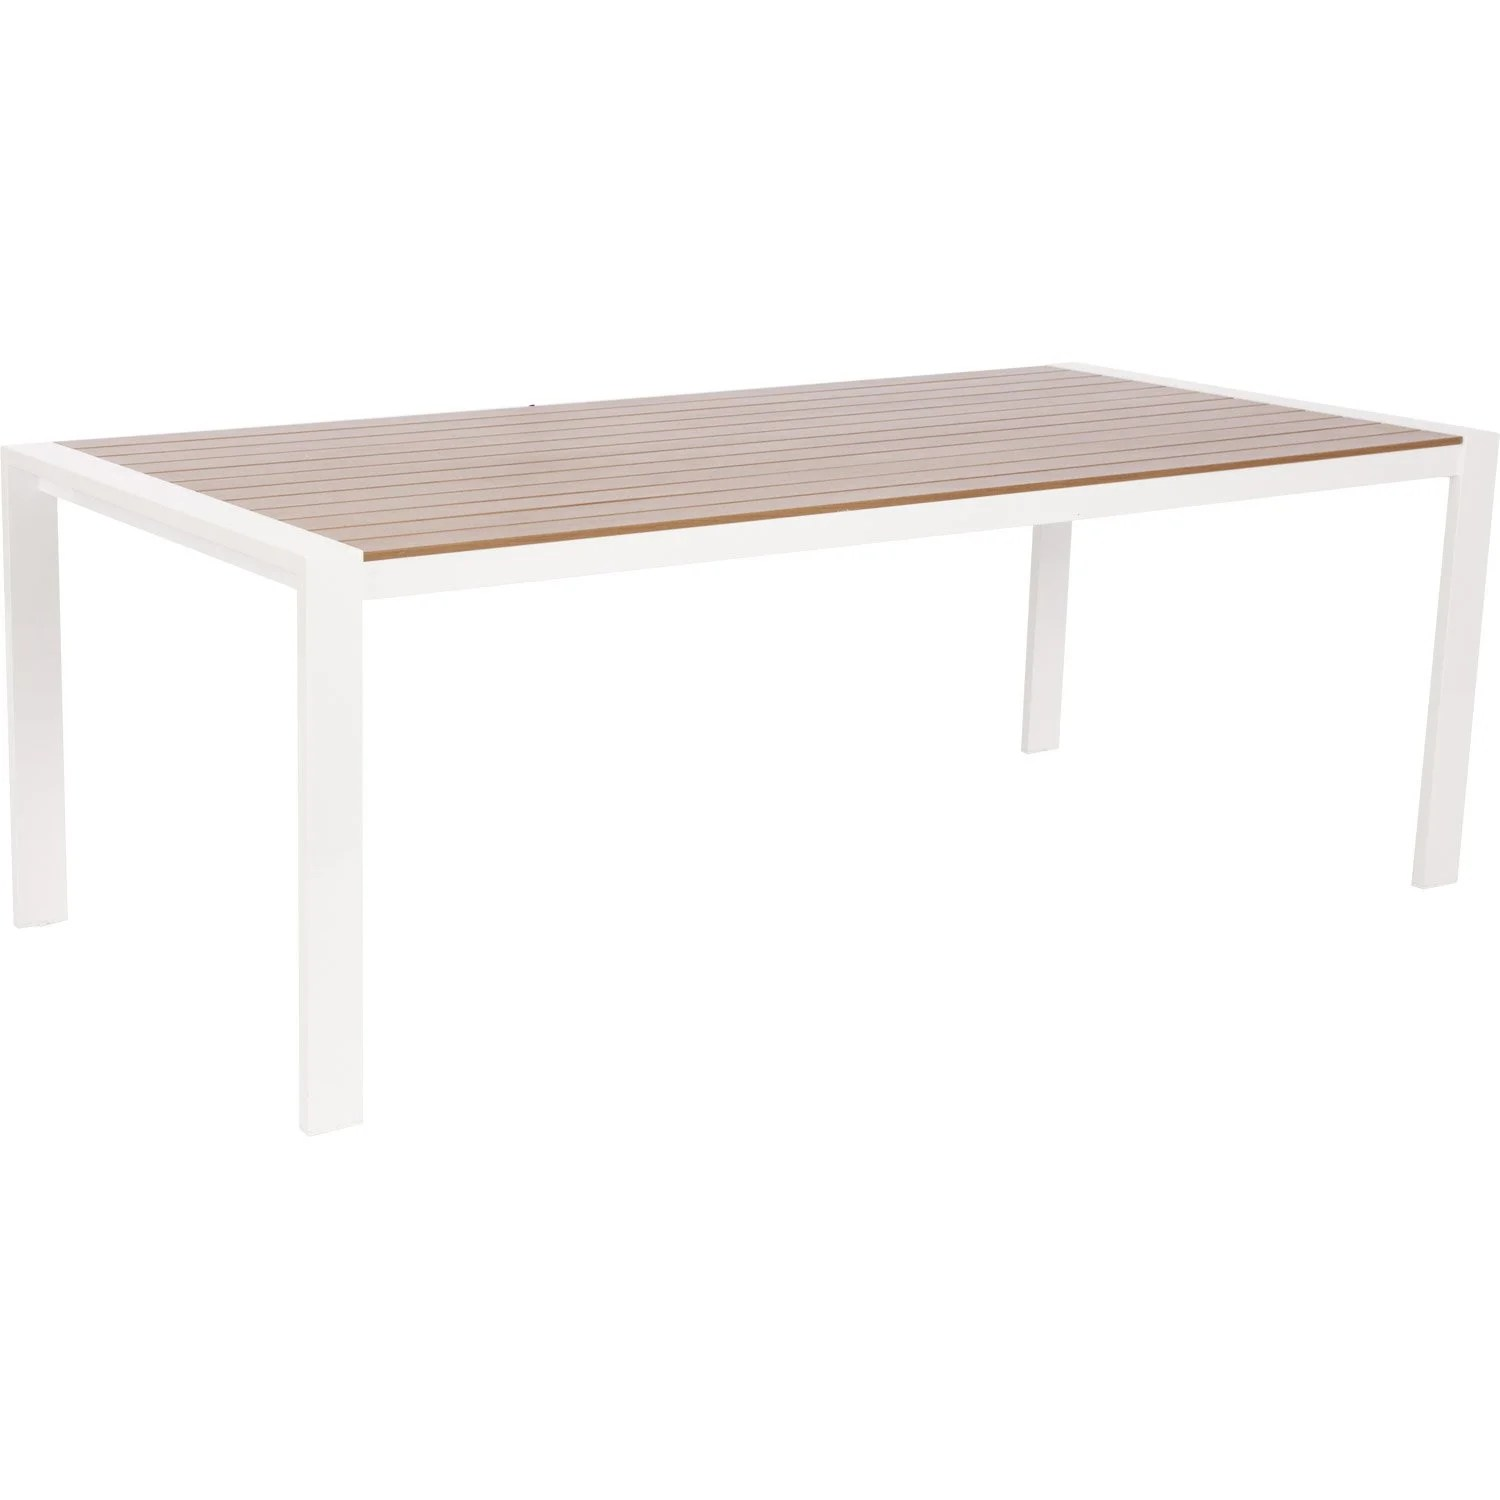 Table De Terrasse Blanche | Table Berlin Noire 120cm